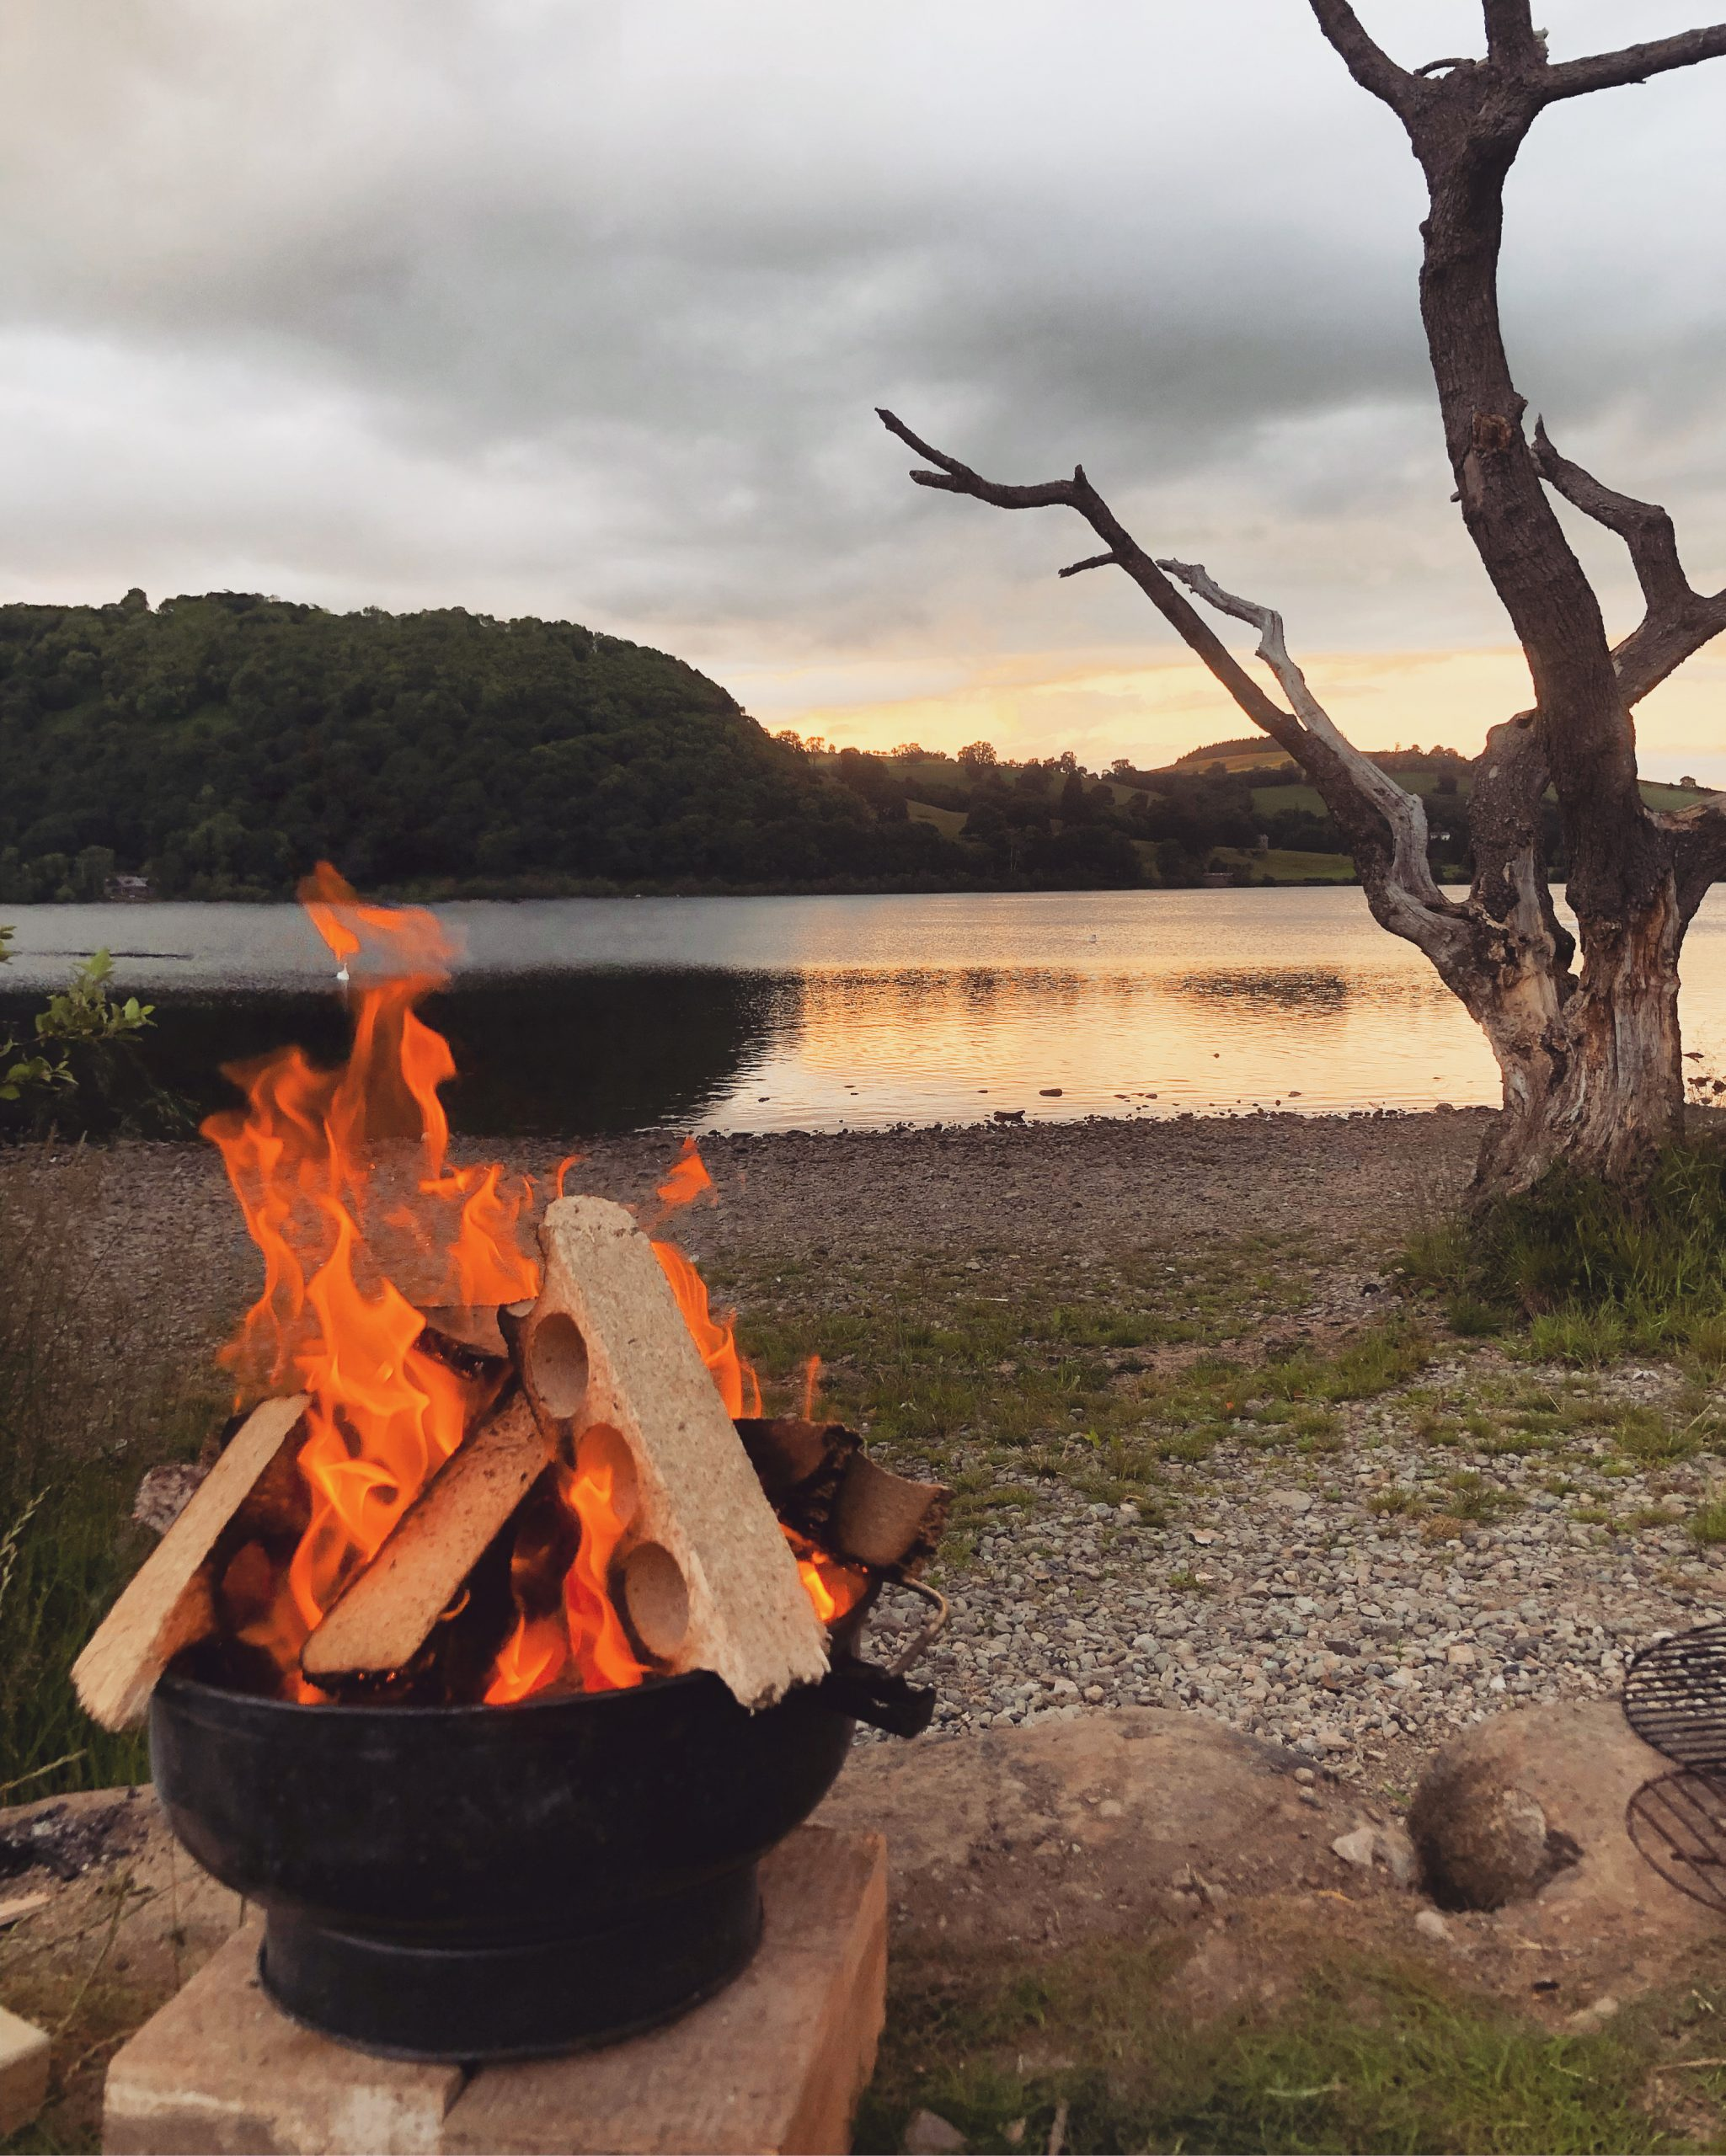 Best campsites in the Lake District